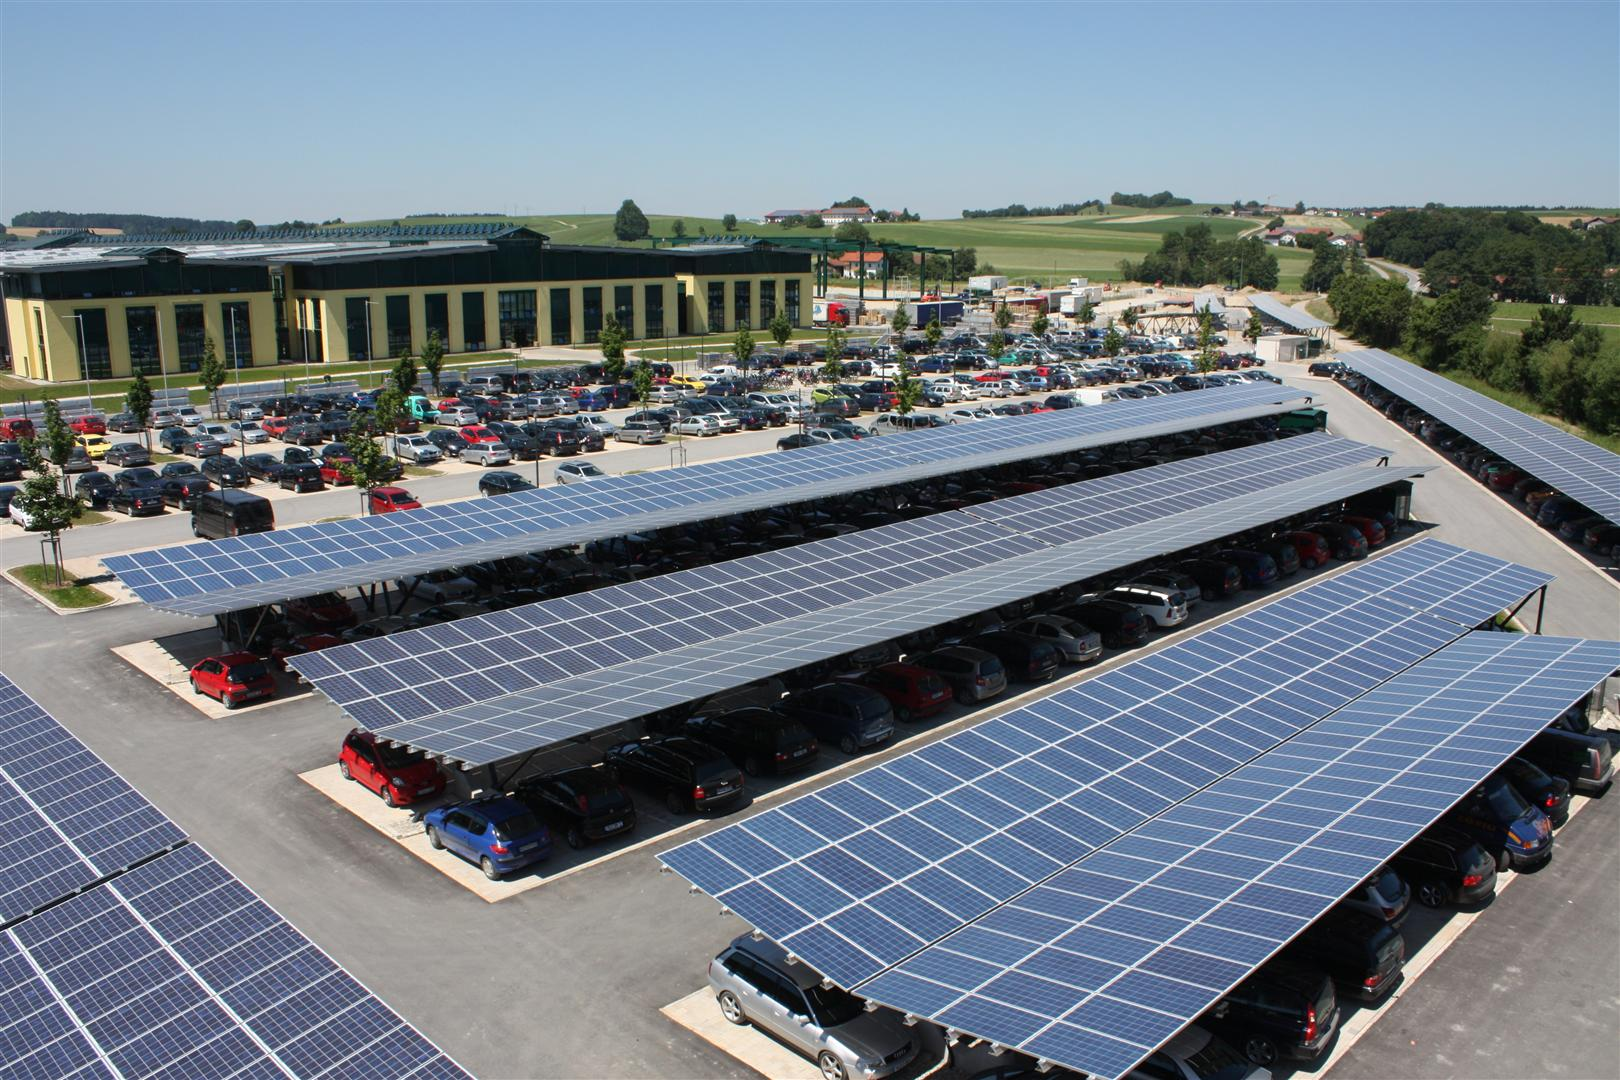 Companies are powering themselves with solar panels in their car parks